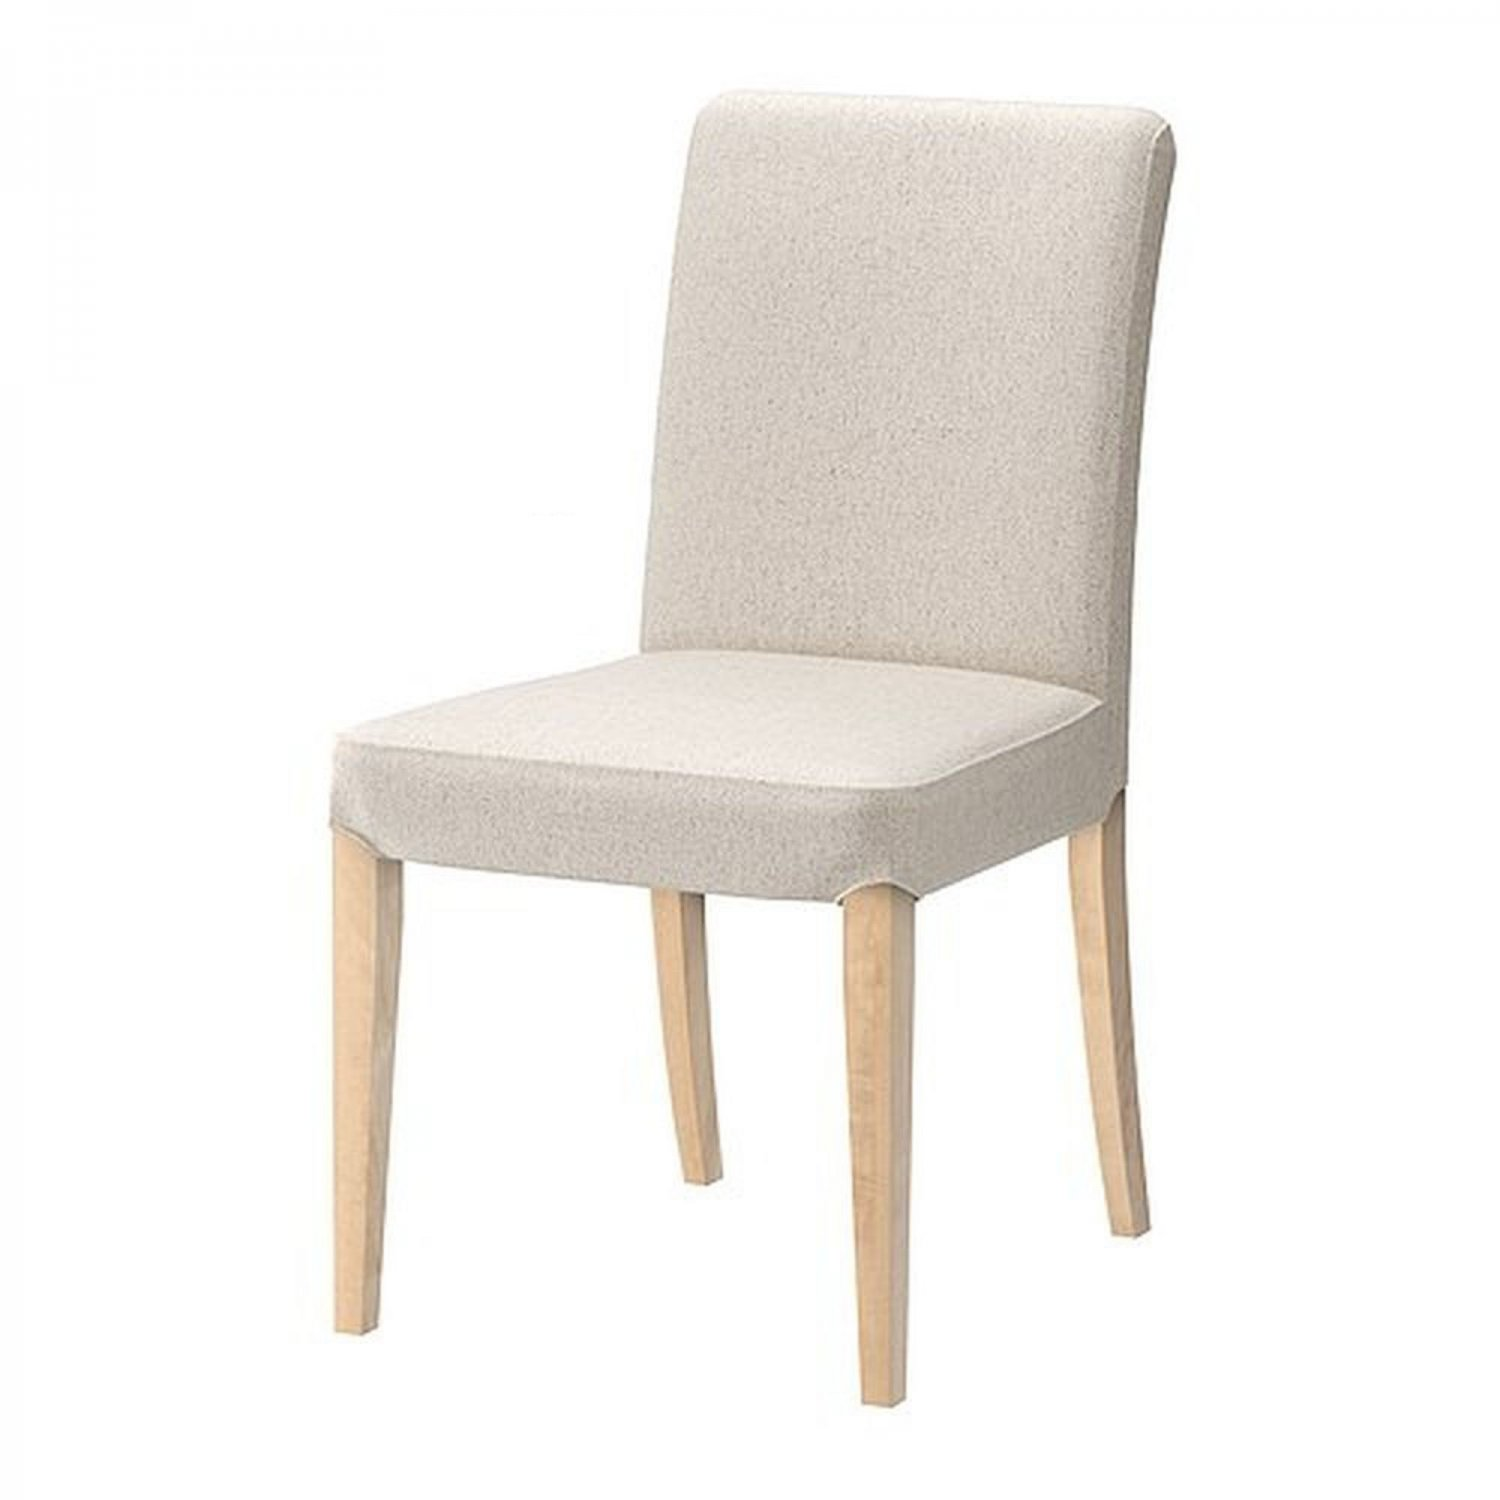 ikea dining table chair covers wedding cover hire basingstoke henriksdal slipcover 21 quot 54cm linneryd